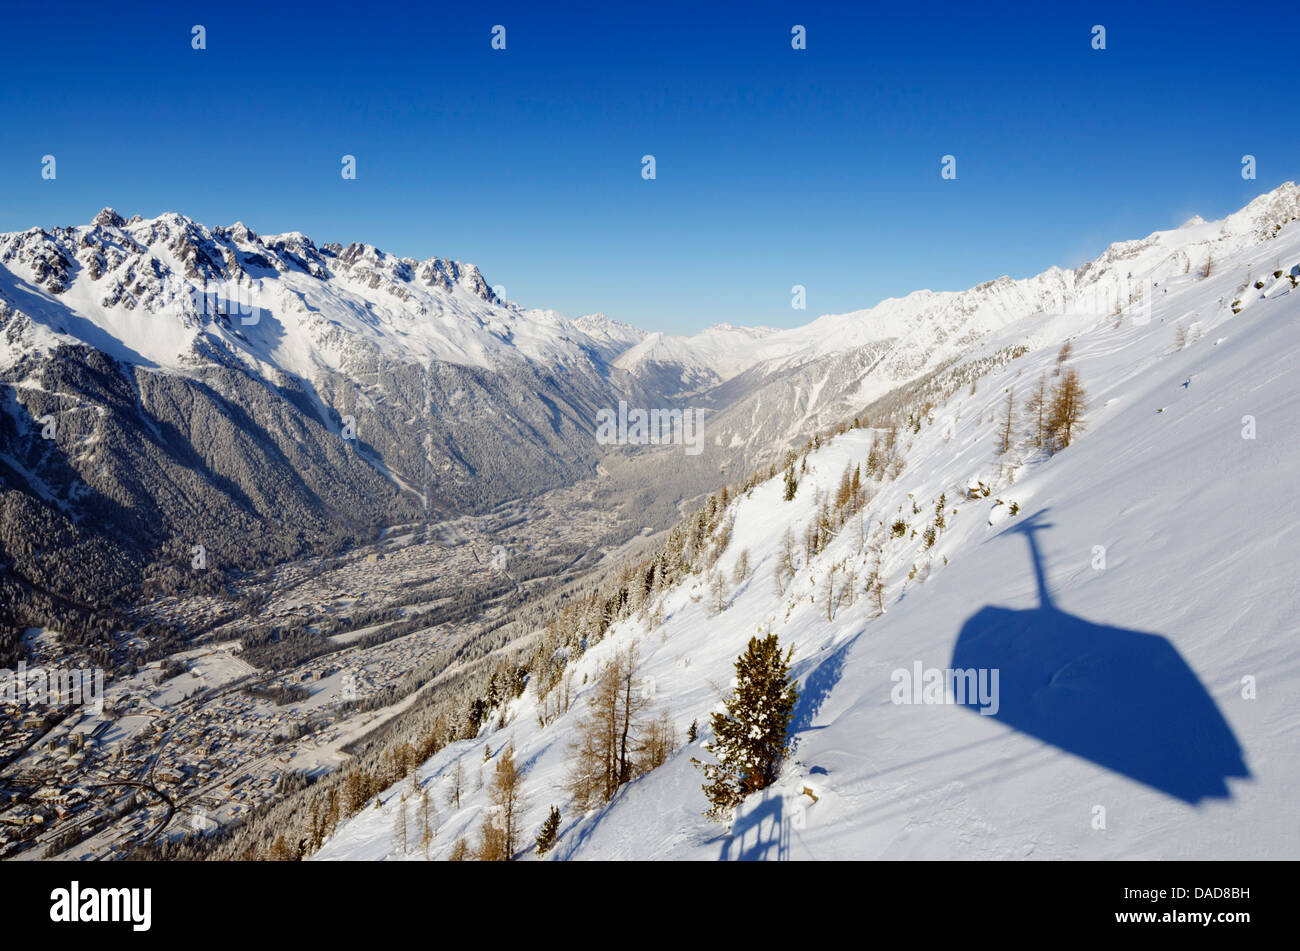 View from Aiguille du Midi cable car, Chamonix, Haute-Savoie, French Alps, France, Europe - Stock Image